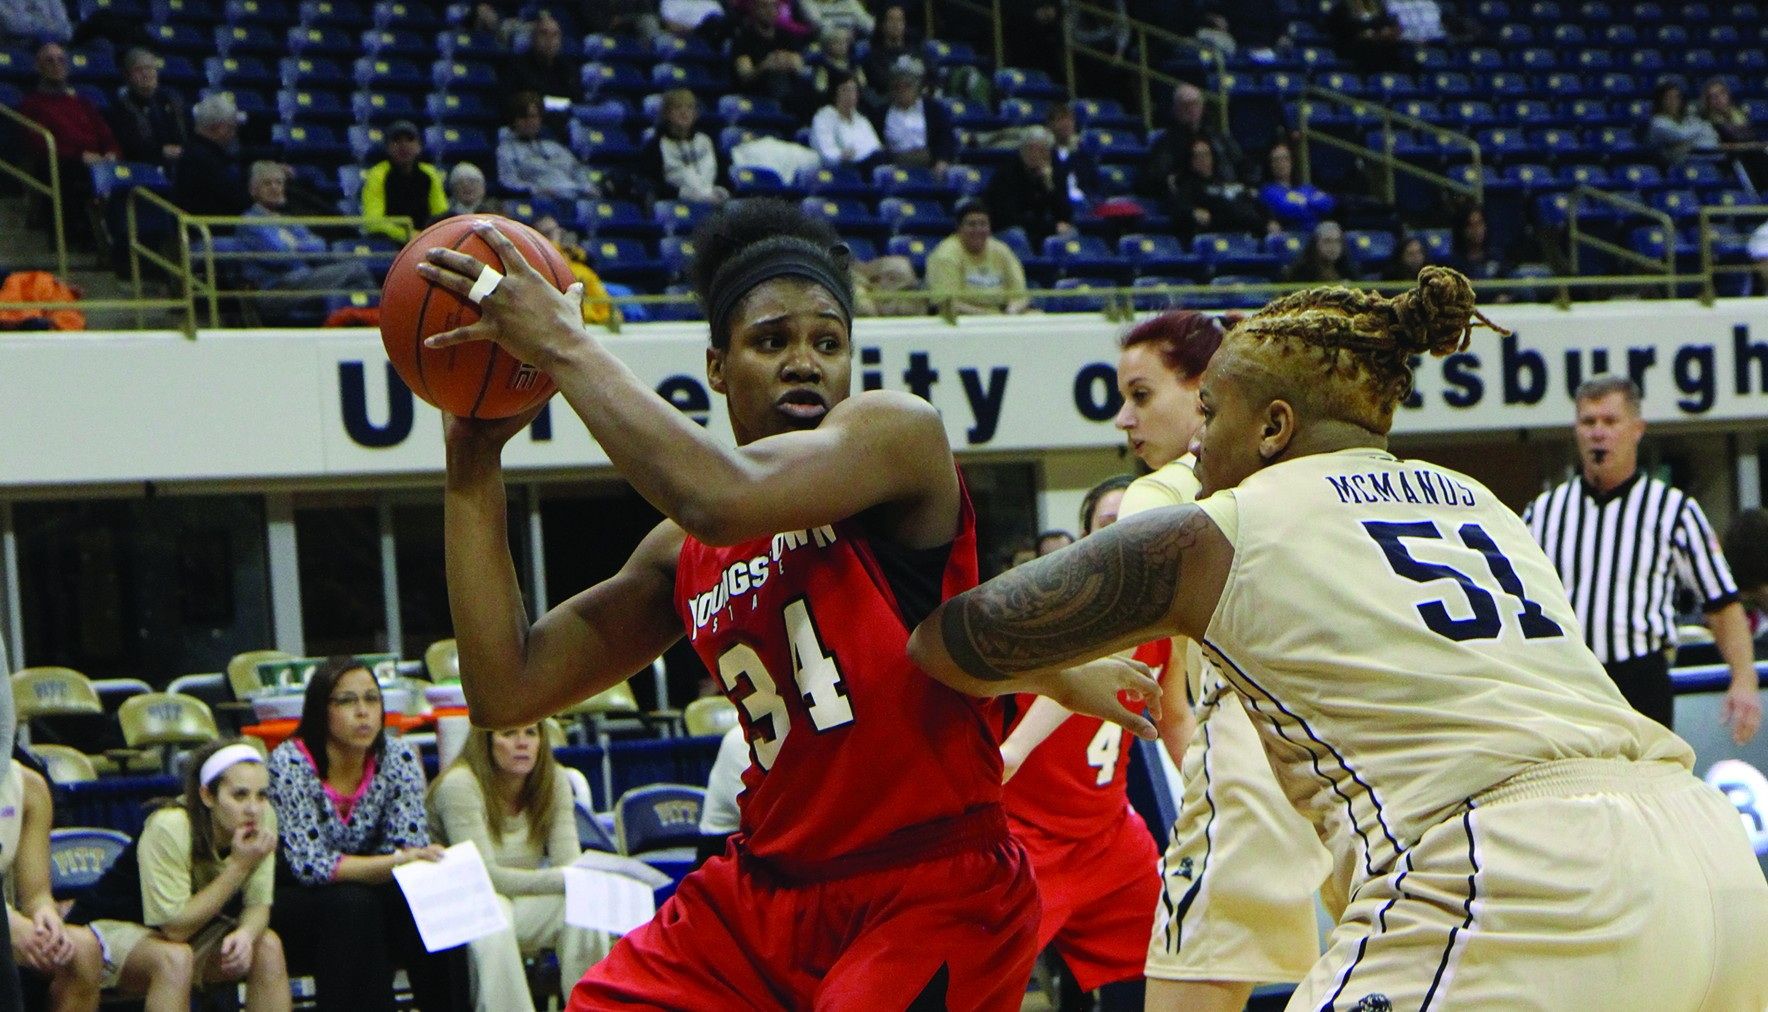 Forward Latisha Walker (34) prepares to engage Pittsburgh center Cora McManus during YSU's Dec. 21 game at the Petersen Events Center in Pittsburgh. Walker finished the game with 15 points and 12 rebounds. Photo courtesy of Ron Stevens.